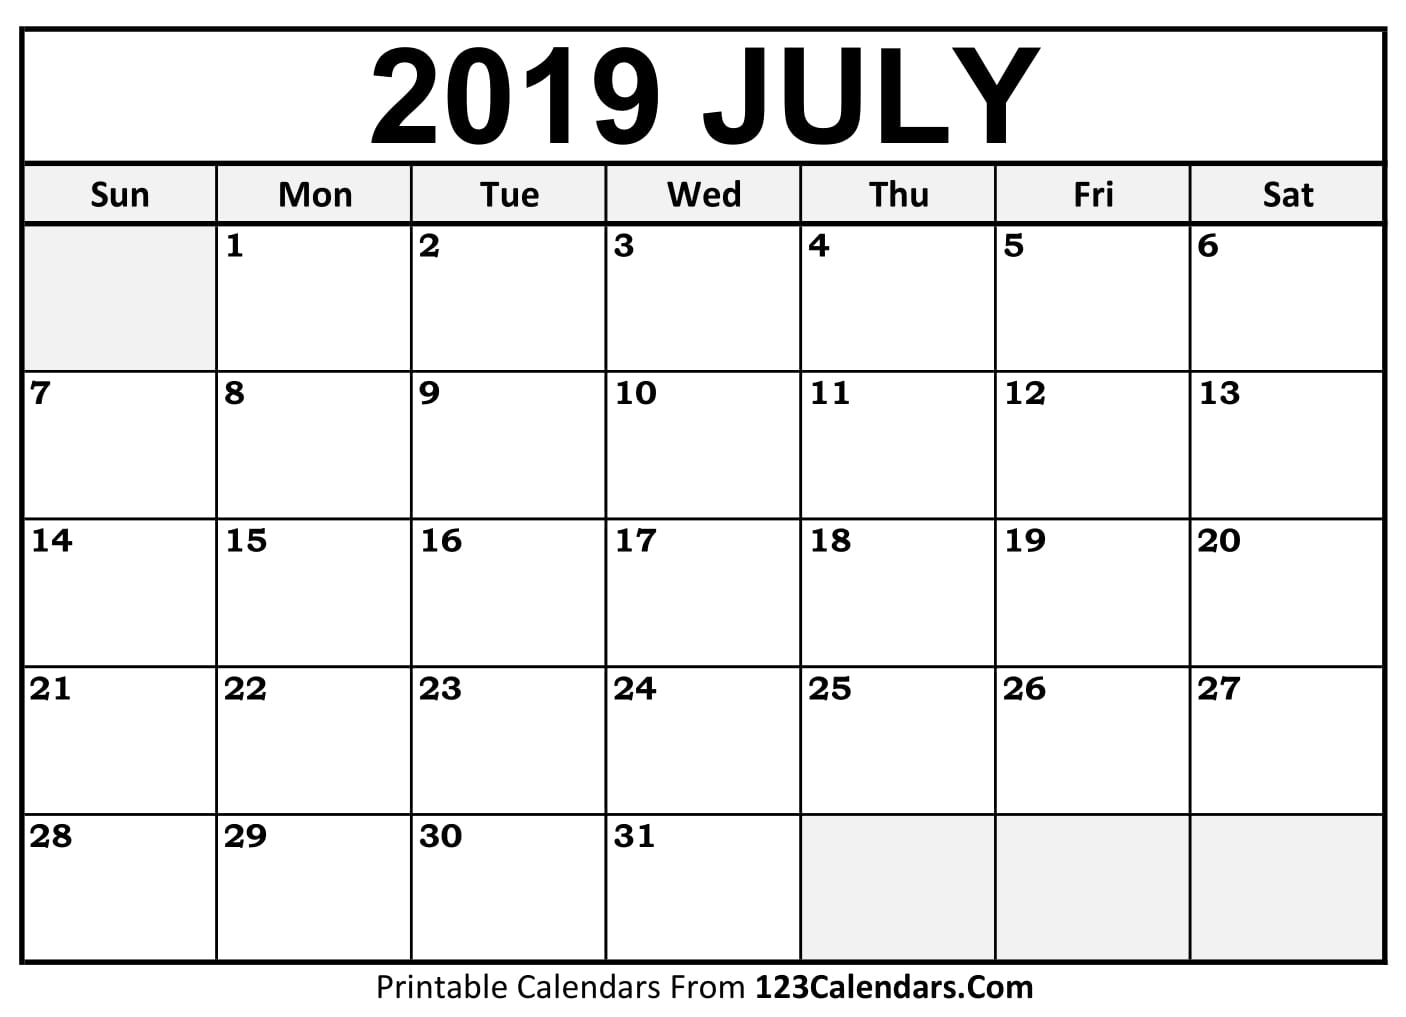 July 2019 Printable Calendar Template By Week And Month